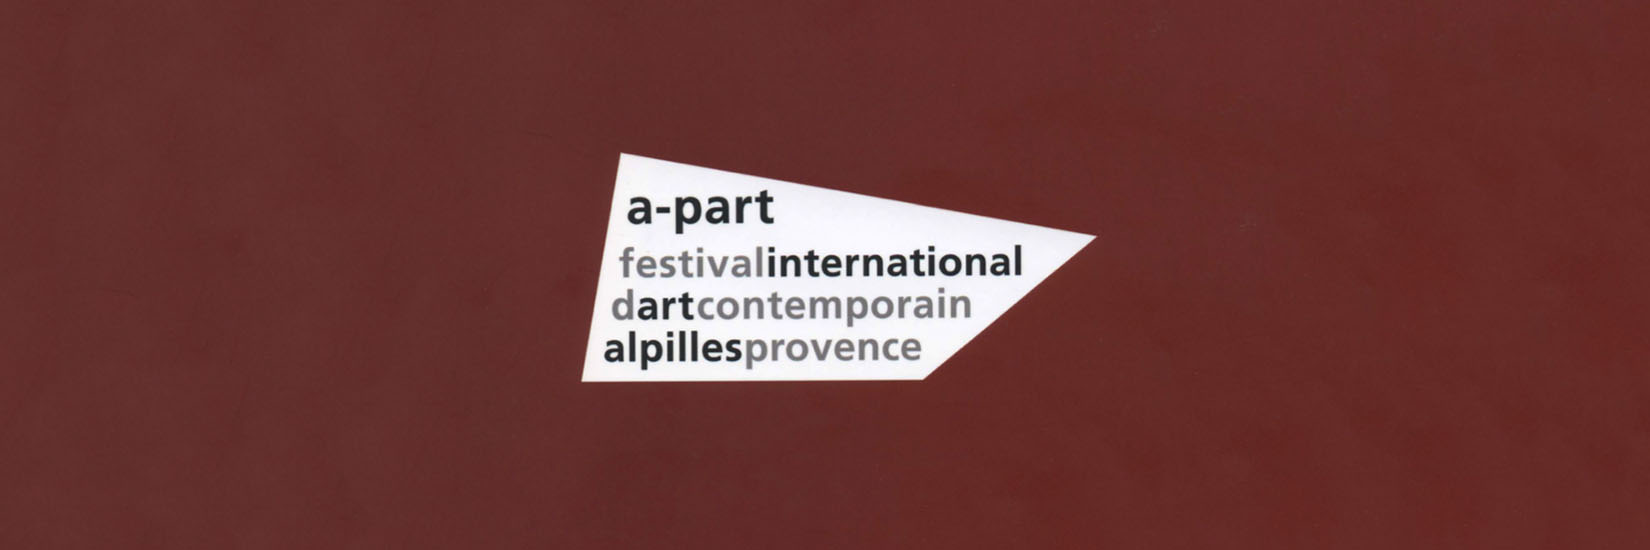 apart festival catalog edition 2015 to 2019 banner